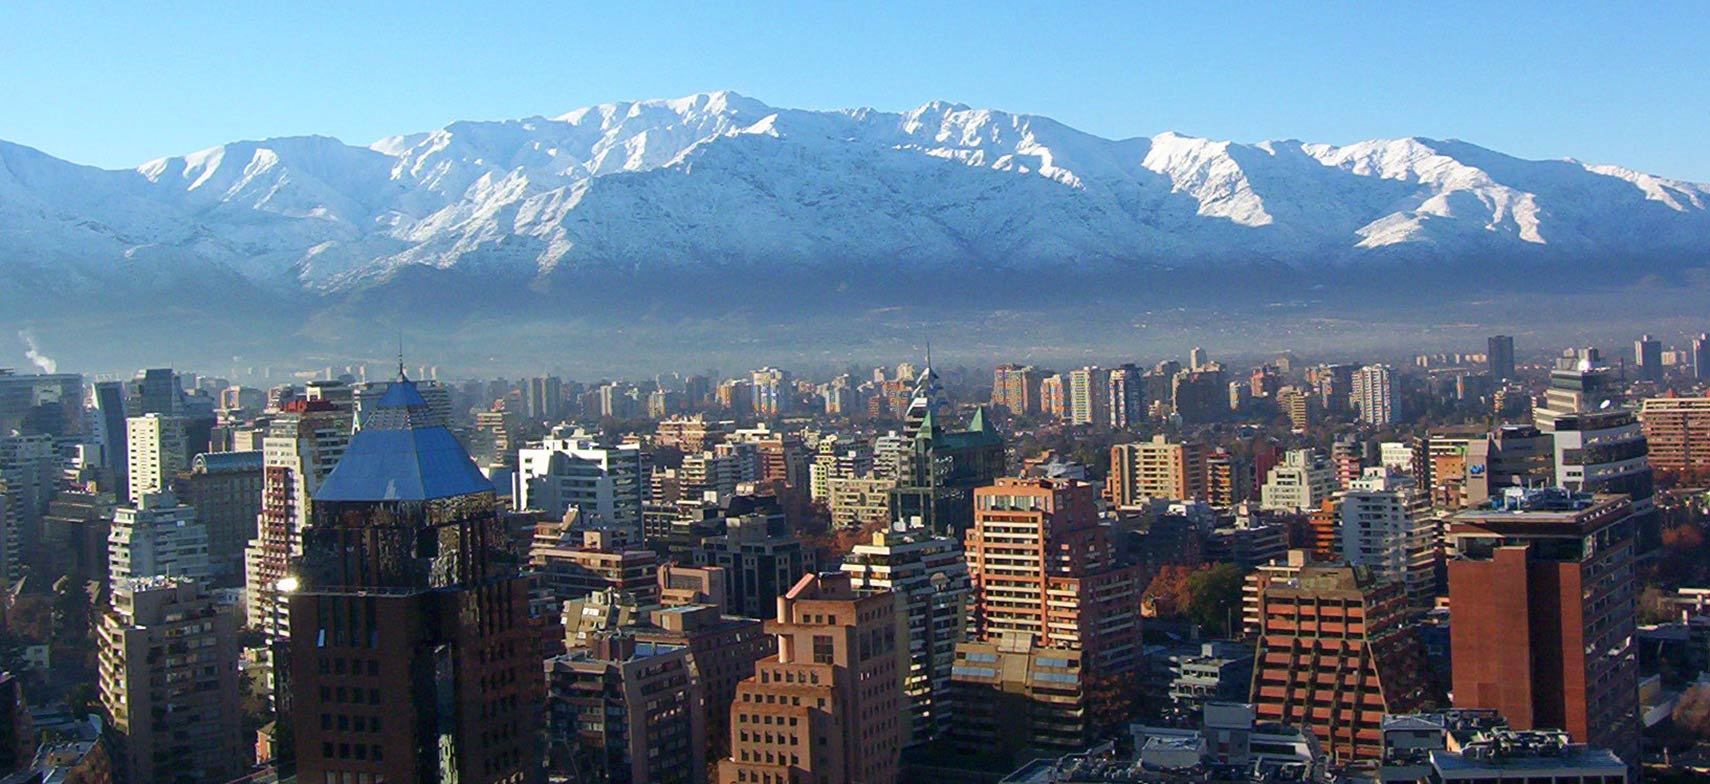 Google Map Of Santiago De Chile Chile S Capital City Nations Online Project